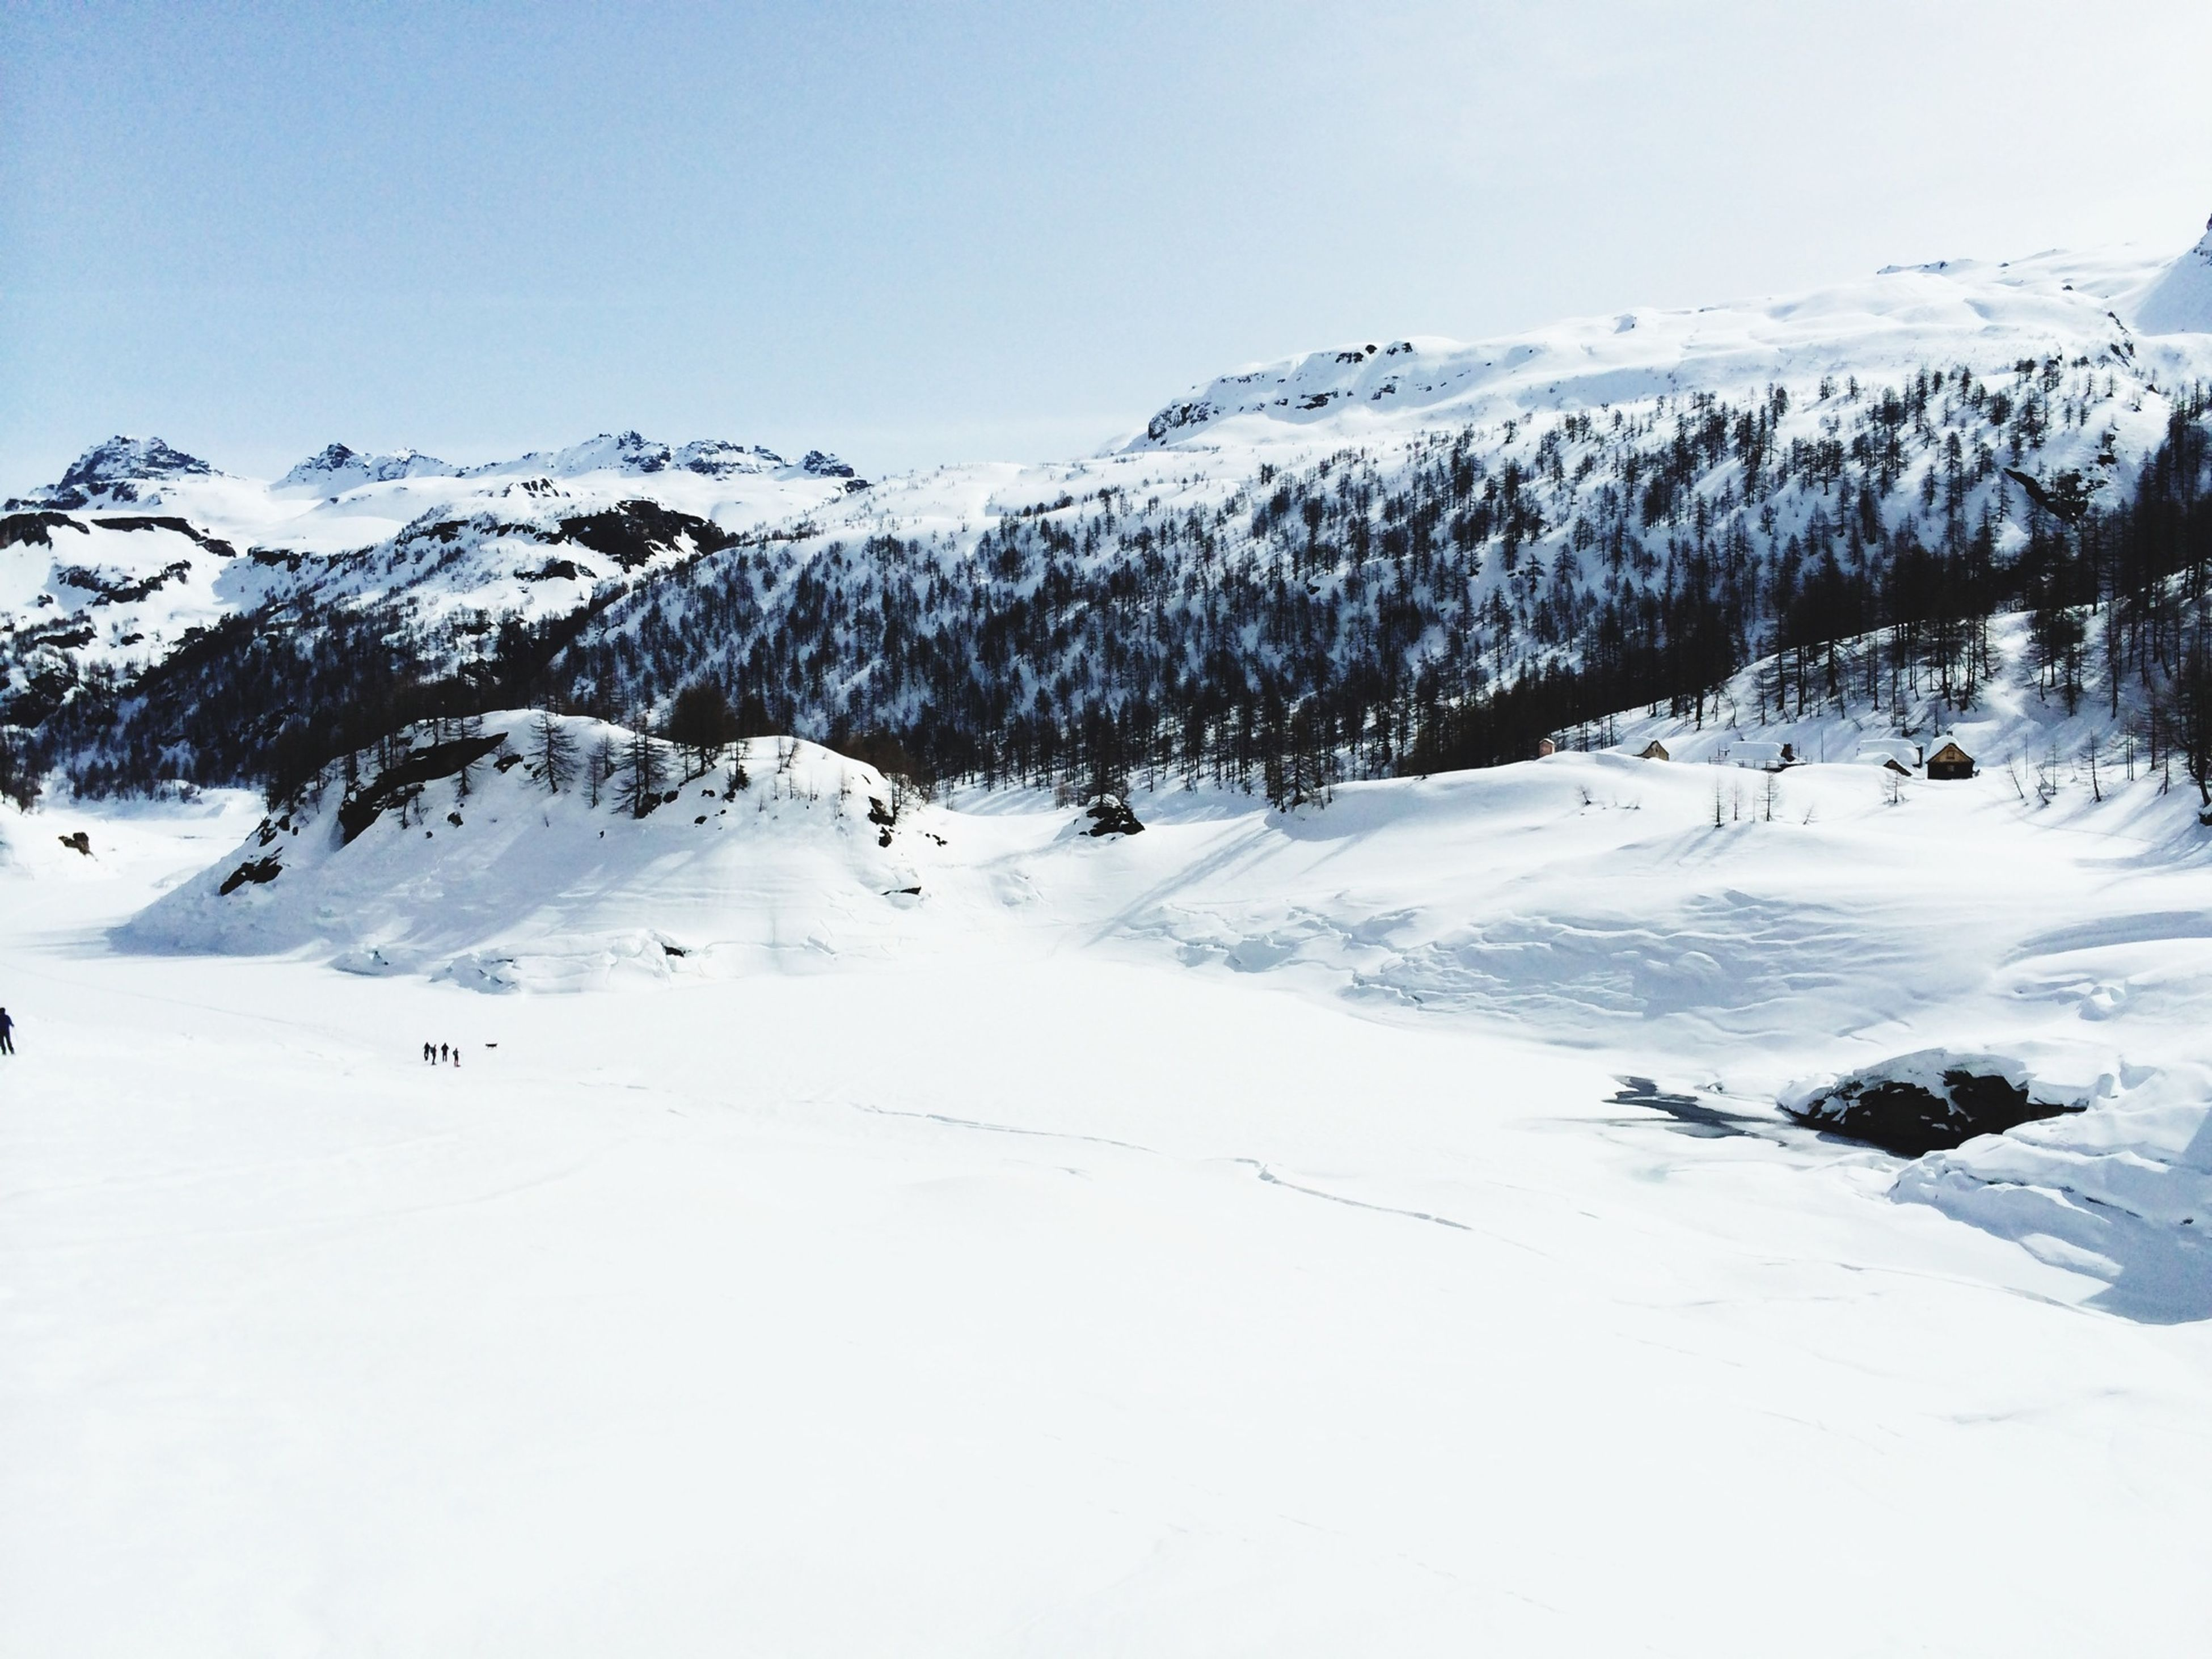 snow, winter, cold temperature, season, mountain, tranquil scene, scenics, tranquility, beauty in nature, landscape, clear sky, weather, covering, nature, white color, snowcapped mountain, mountain range, non-urban scene, frozen, copy space